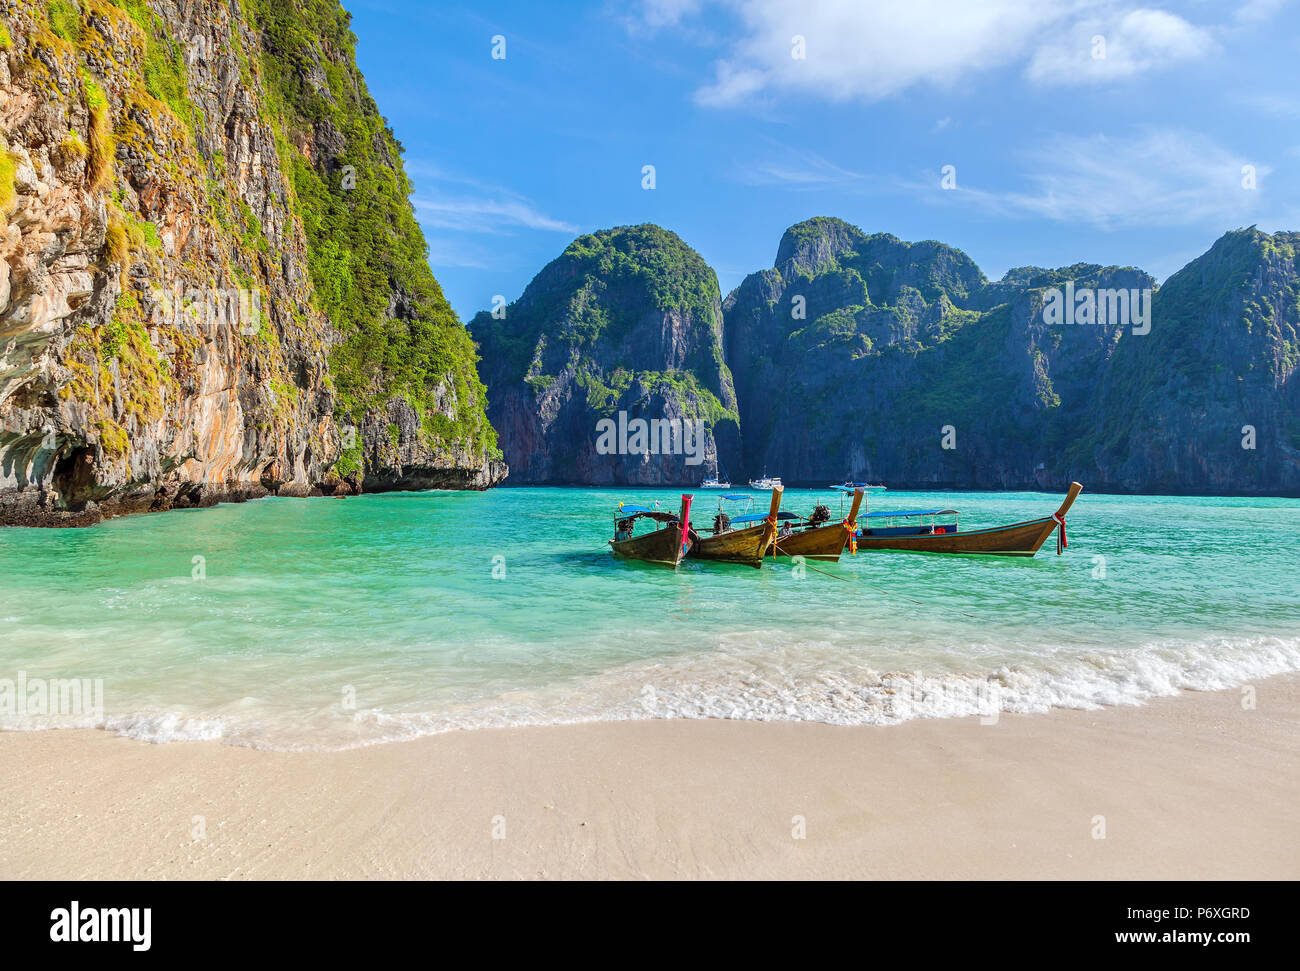 The famous Maya Bay. Krabi Province in Thailand. - Stock Image